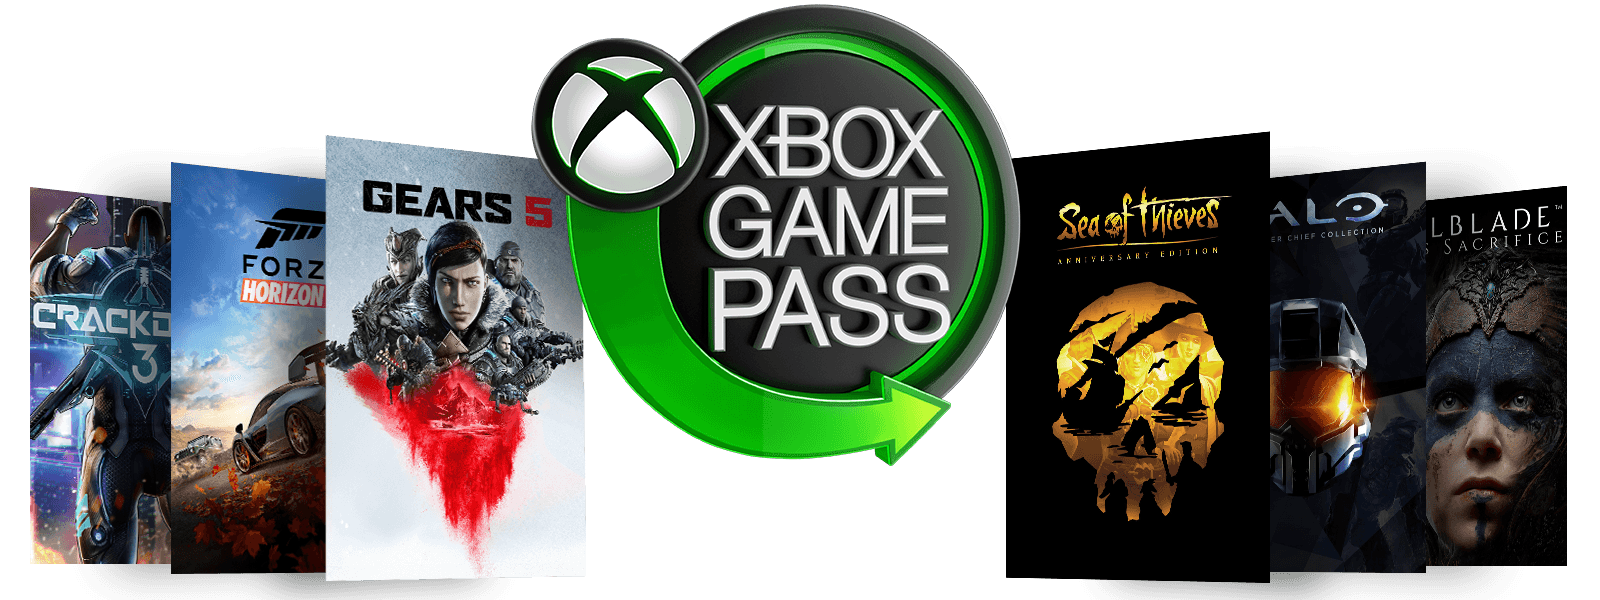 Xbox Game Pass-neonlogo omgitt av coverbilder av Forza Horizon 4, Playerunknown Battleground, Crackdown 3, sea of thieves anniversary edition, halo og Hellbade: senua's sacrifice